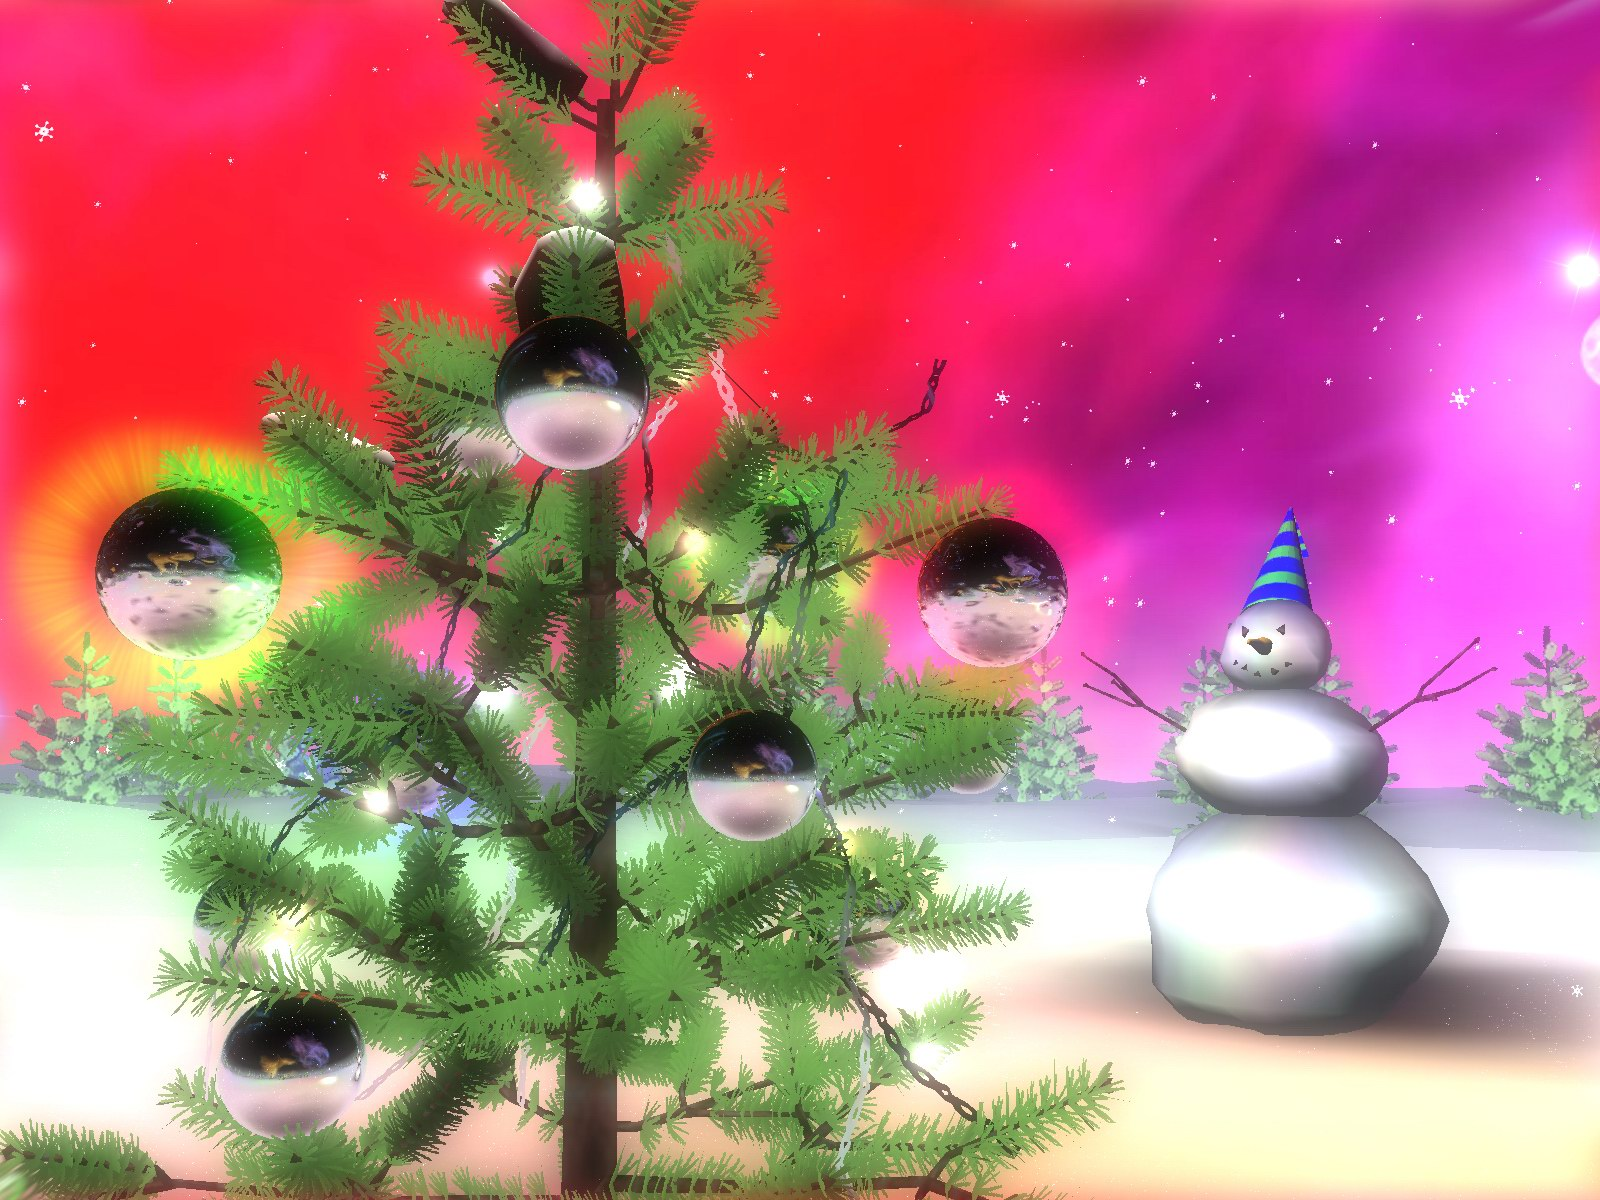 chirstmas christmas screensavers 1600x1200